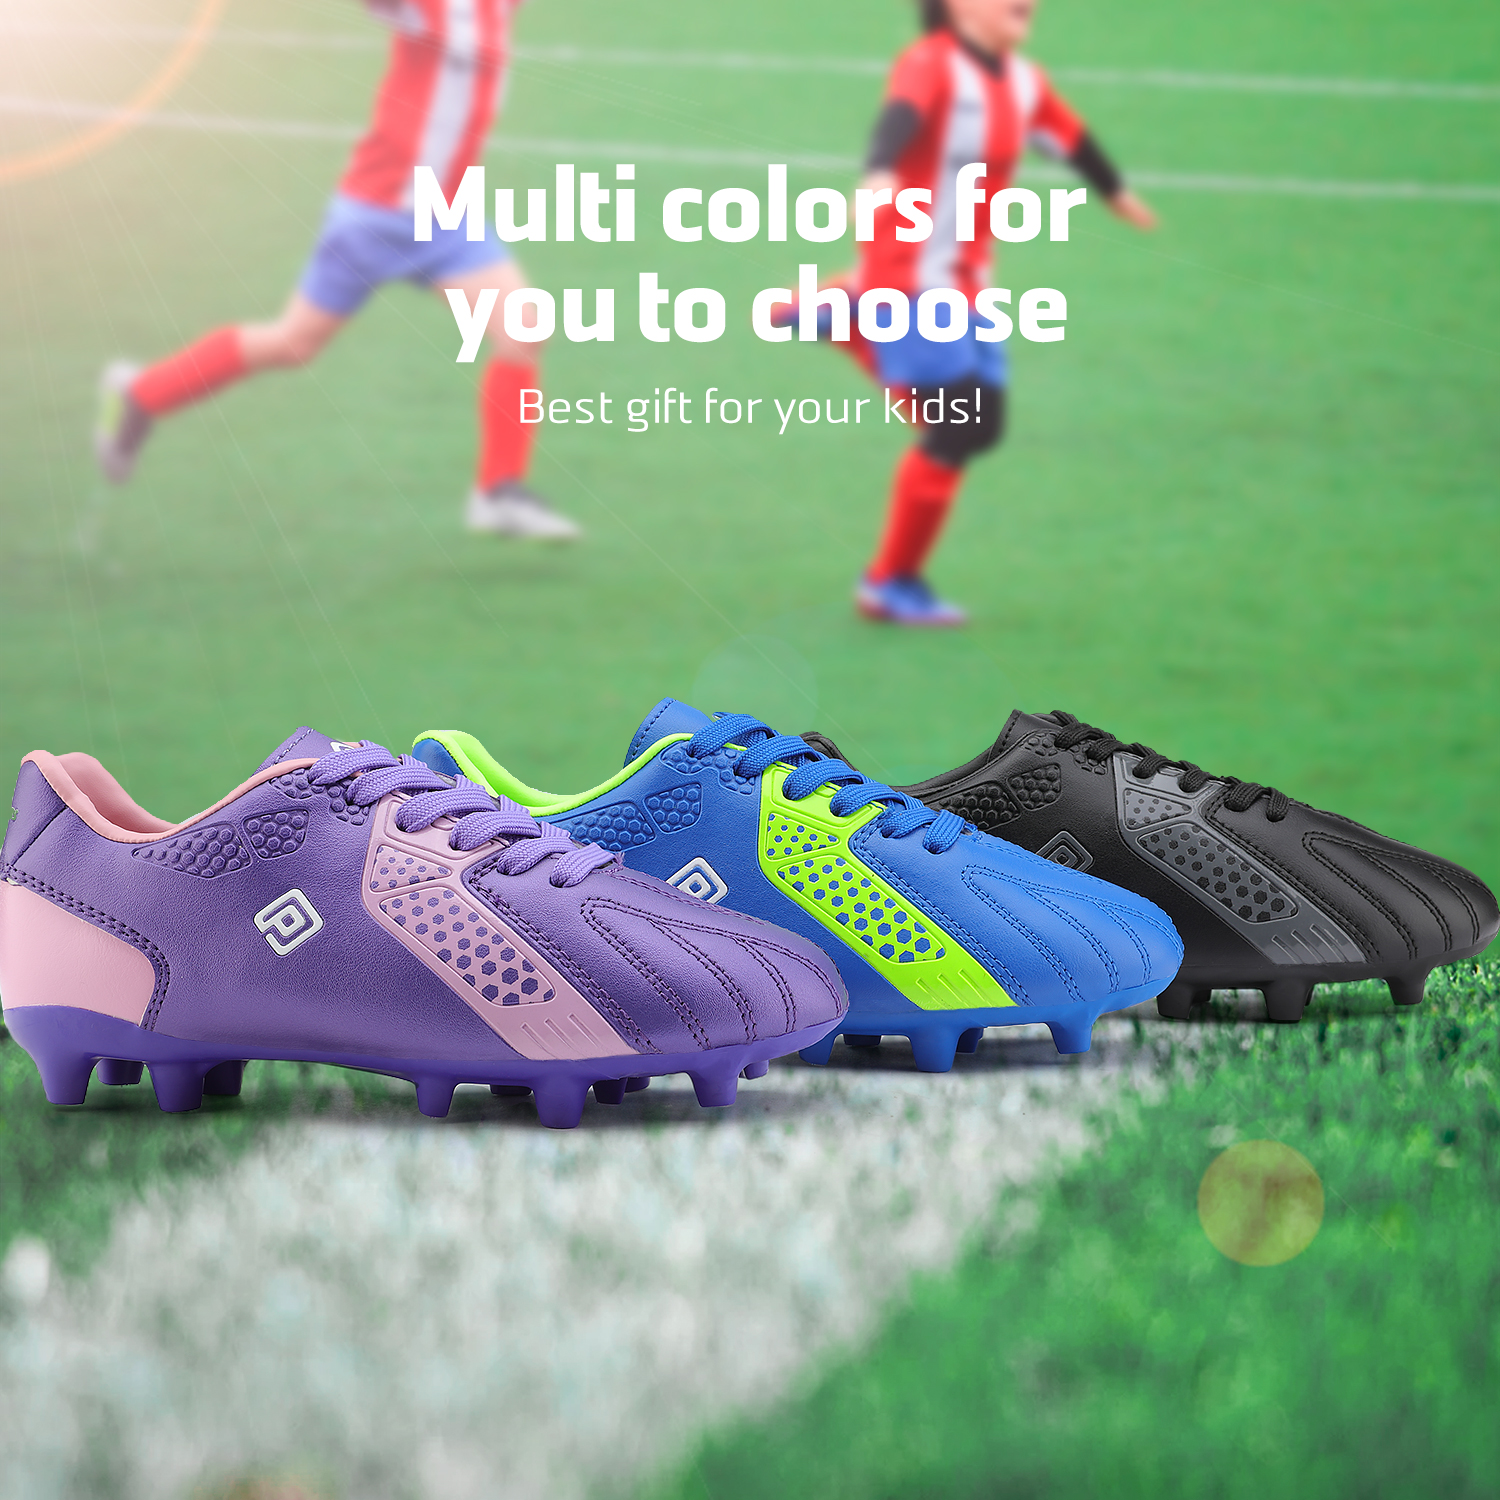 miniature 37 - Men's Kids Football Chaussures Crampons Football Indoor Sports Baskets Sneakers Fashion